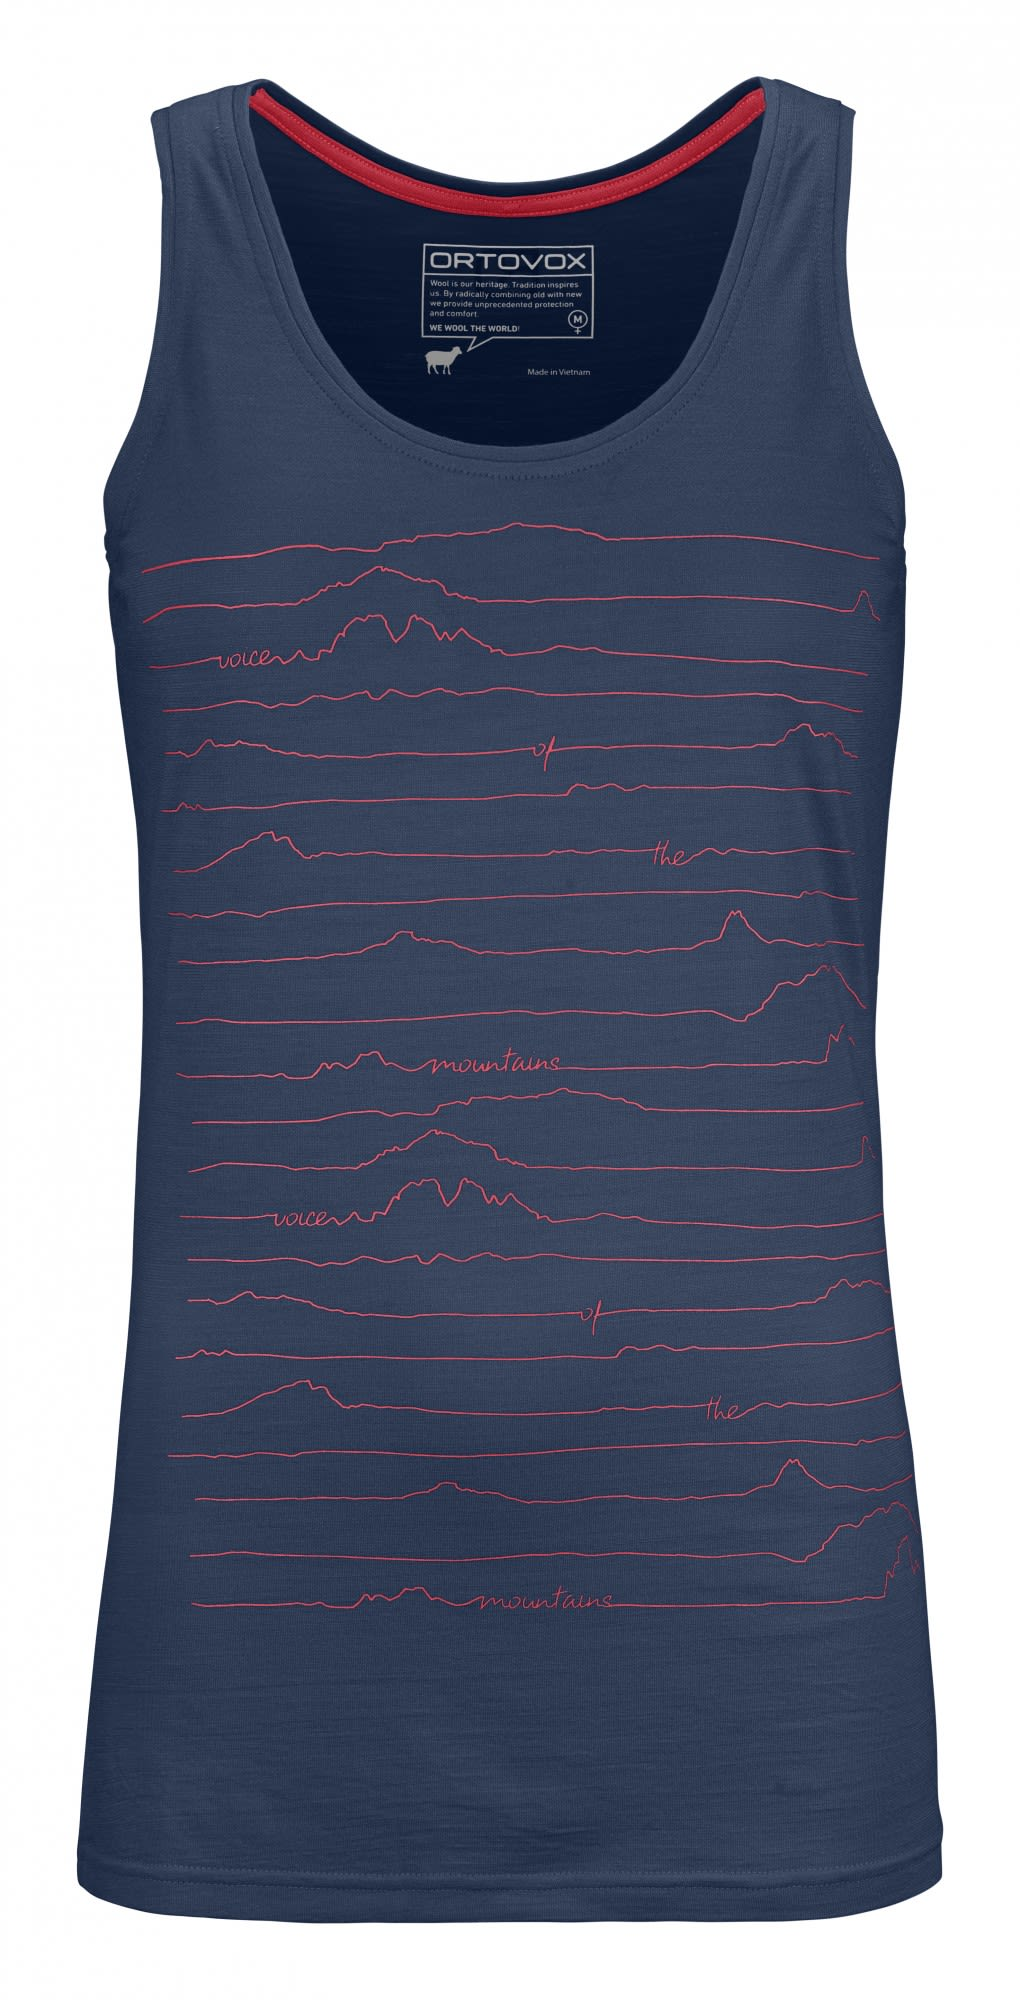 Ortovox W 150 Merino Cool Voice Tank Top (Modell Sommer 2018)  18d32ad1f